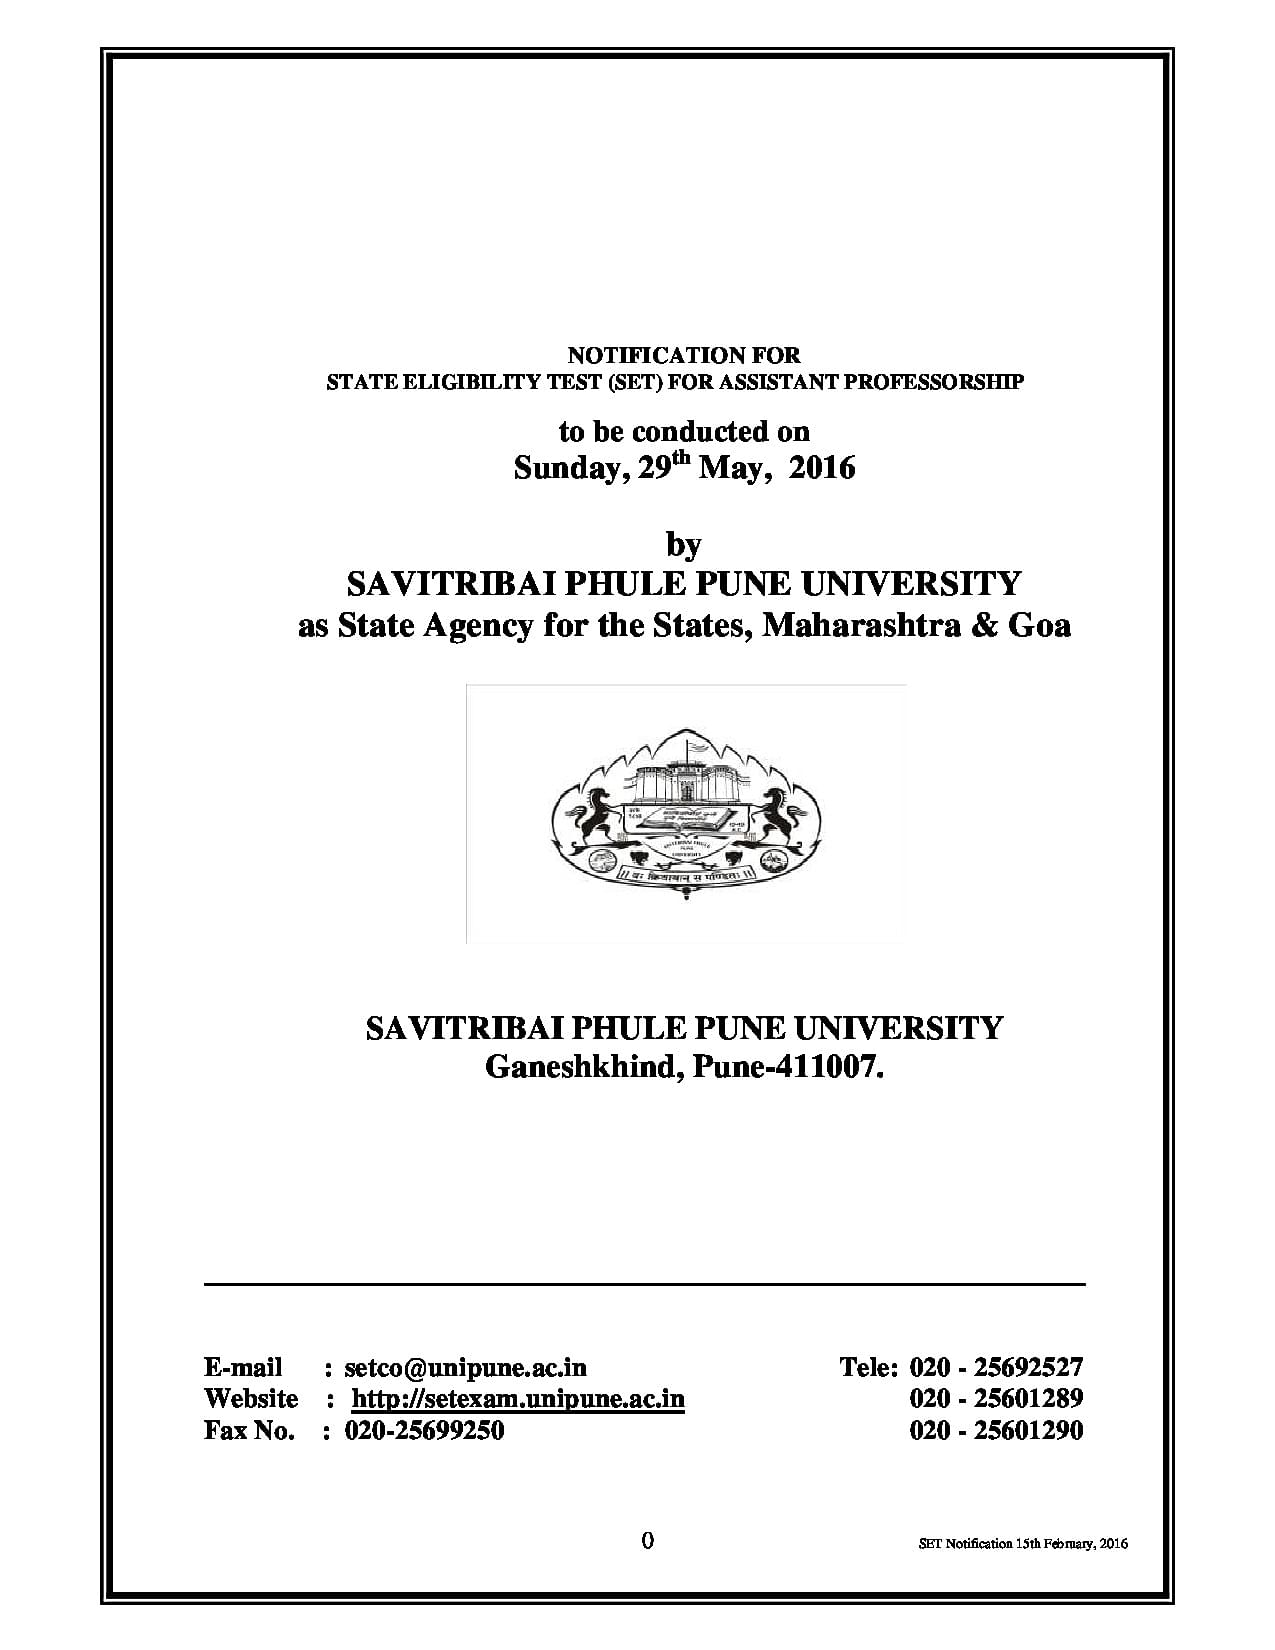 Pune University - Result, Exams, Cut Off, Course, Fees, Admission